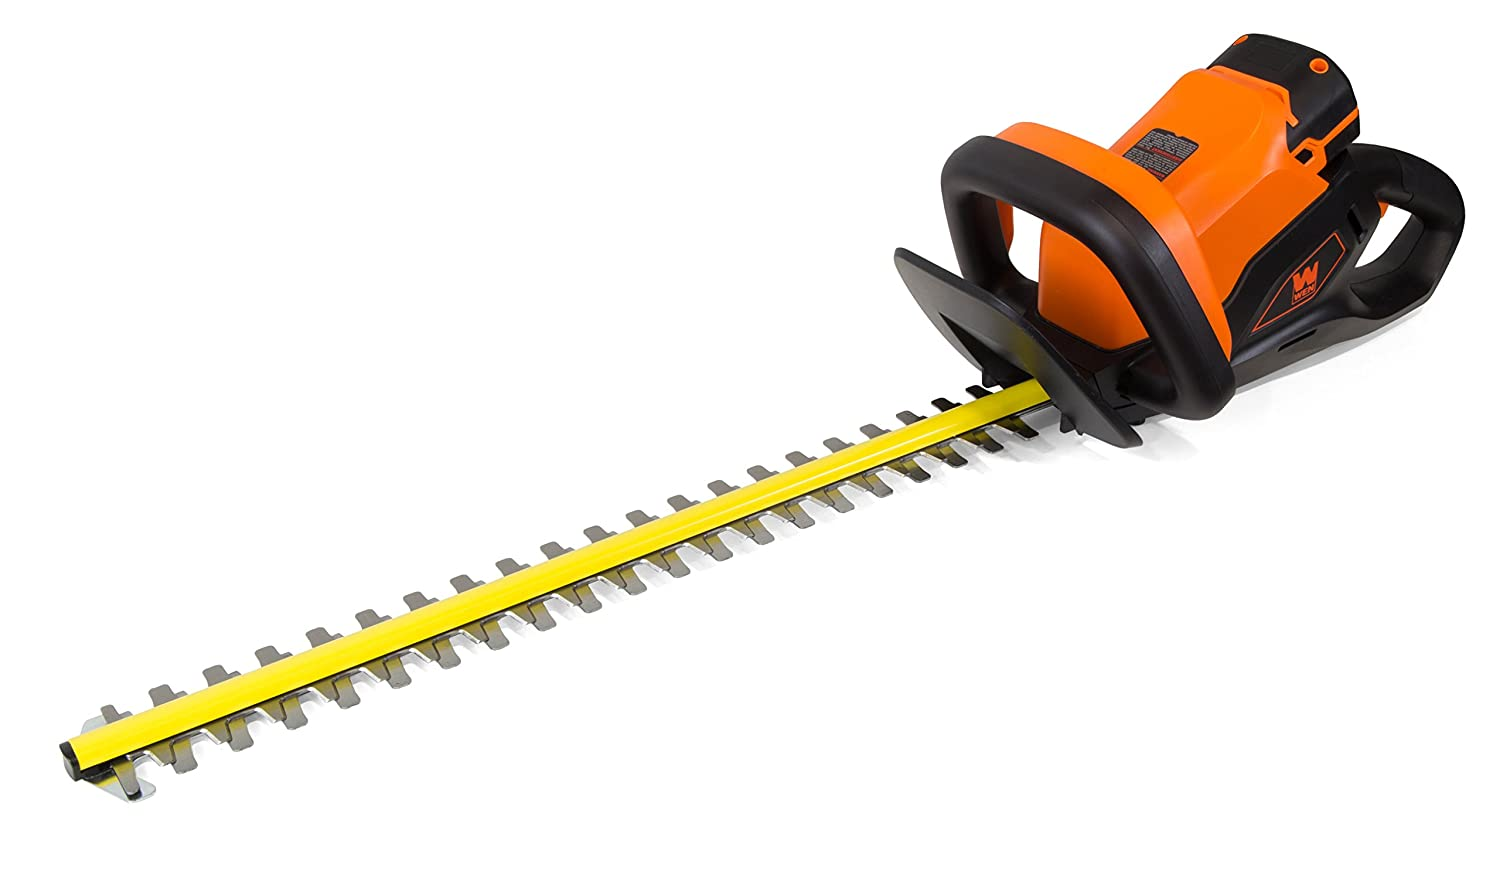 WEN 40415 40-Volt Max Lithium-Ion 24 in. Cordless Hedge Trimmer with 2Ah Battery and Charger